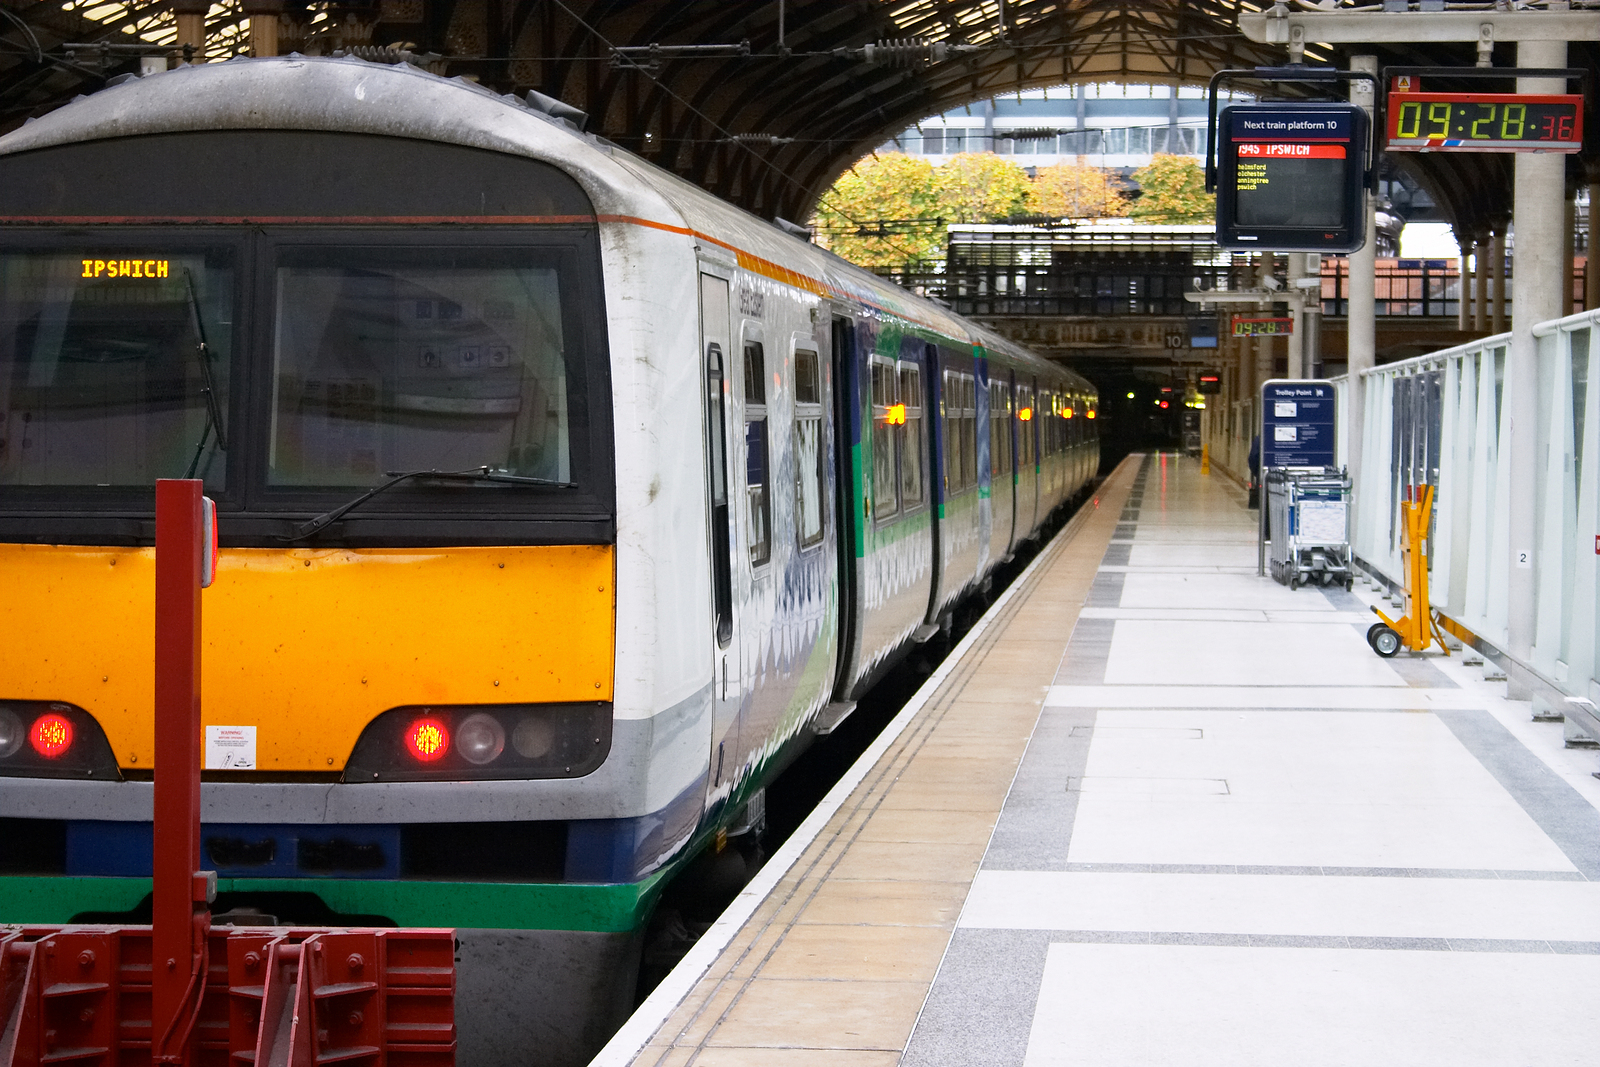 reducing rail fares? Not everyone is quite so happy about it